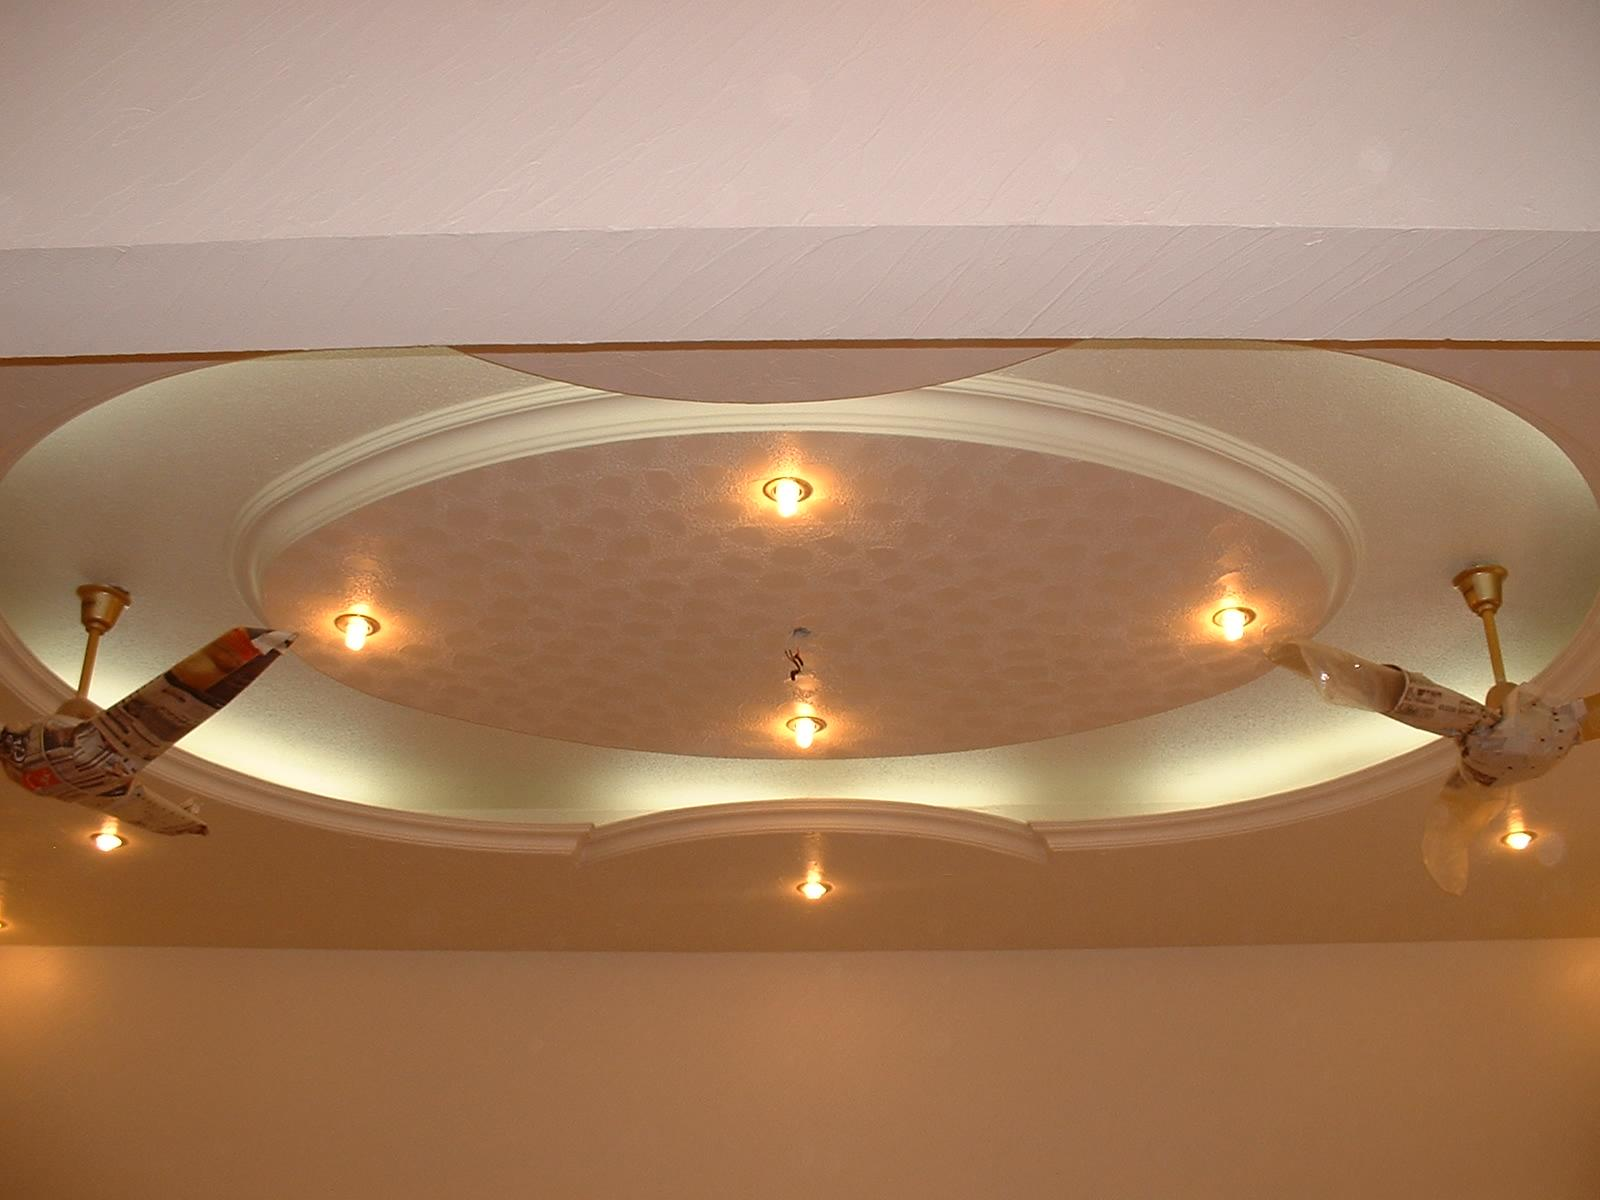 Pop ceiling with ceiling fans and lighting gharexpert for Wall ceiling pop designs